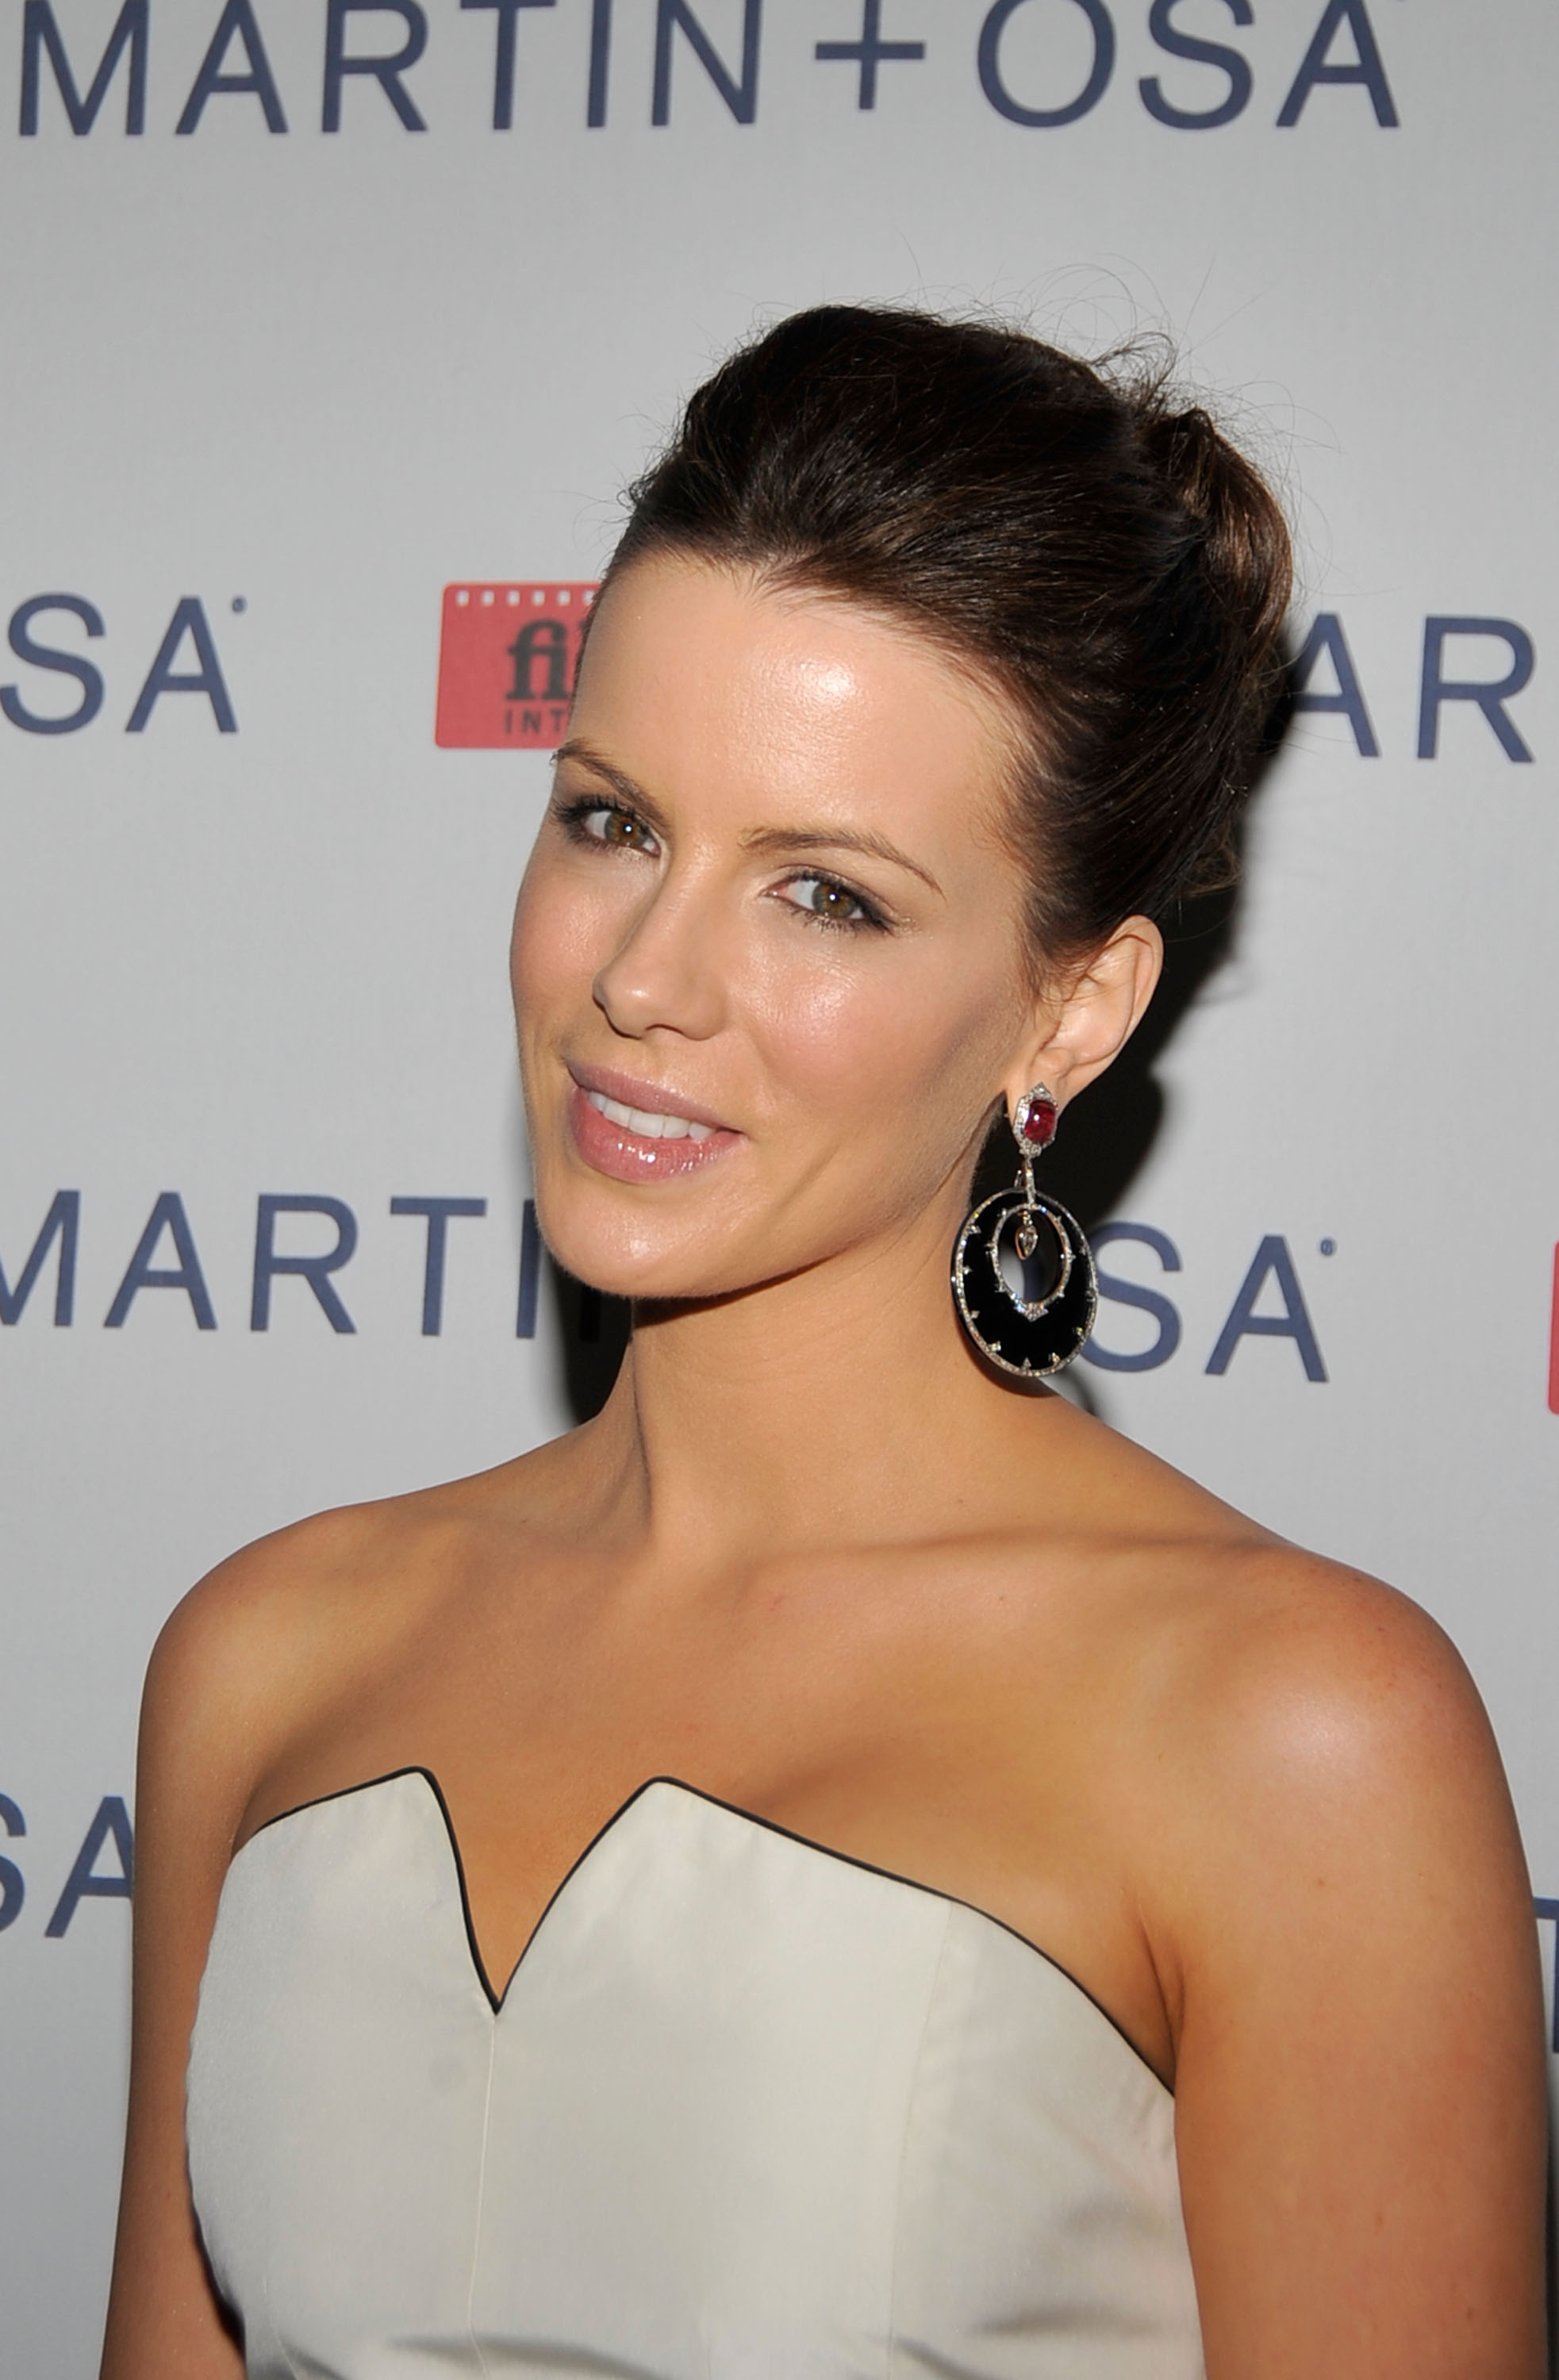 08624_Celebutopia-Kate_Beckinsale-Martin_2_Osa30s_Screening_Of_All_About_Eve_in_Hollywood-05_122_85lo.jpg